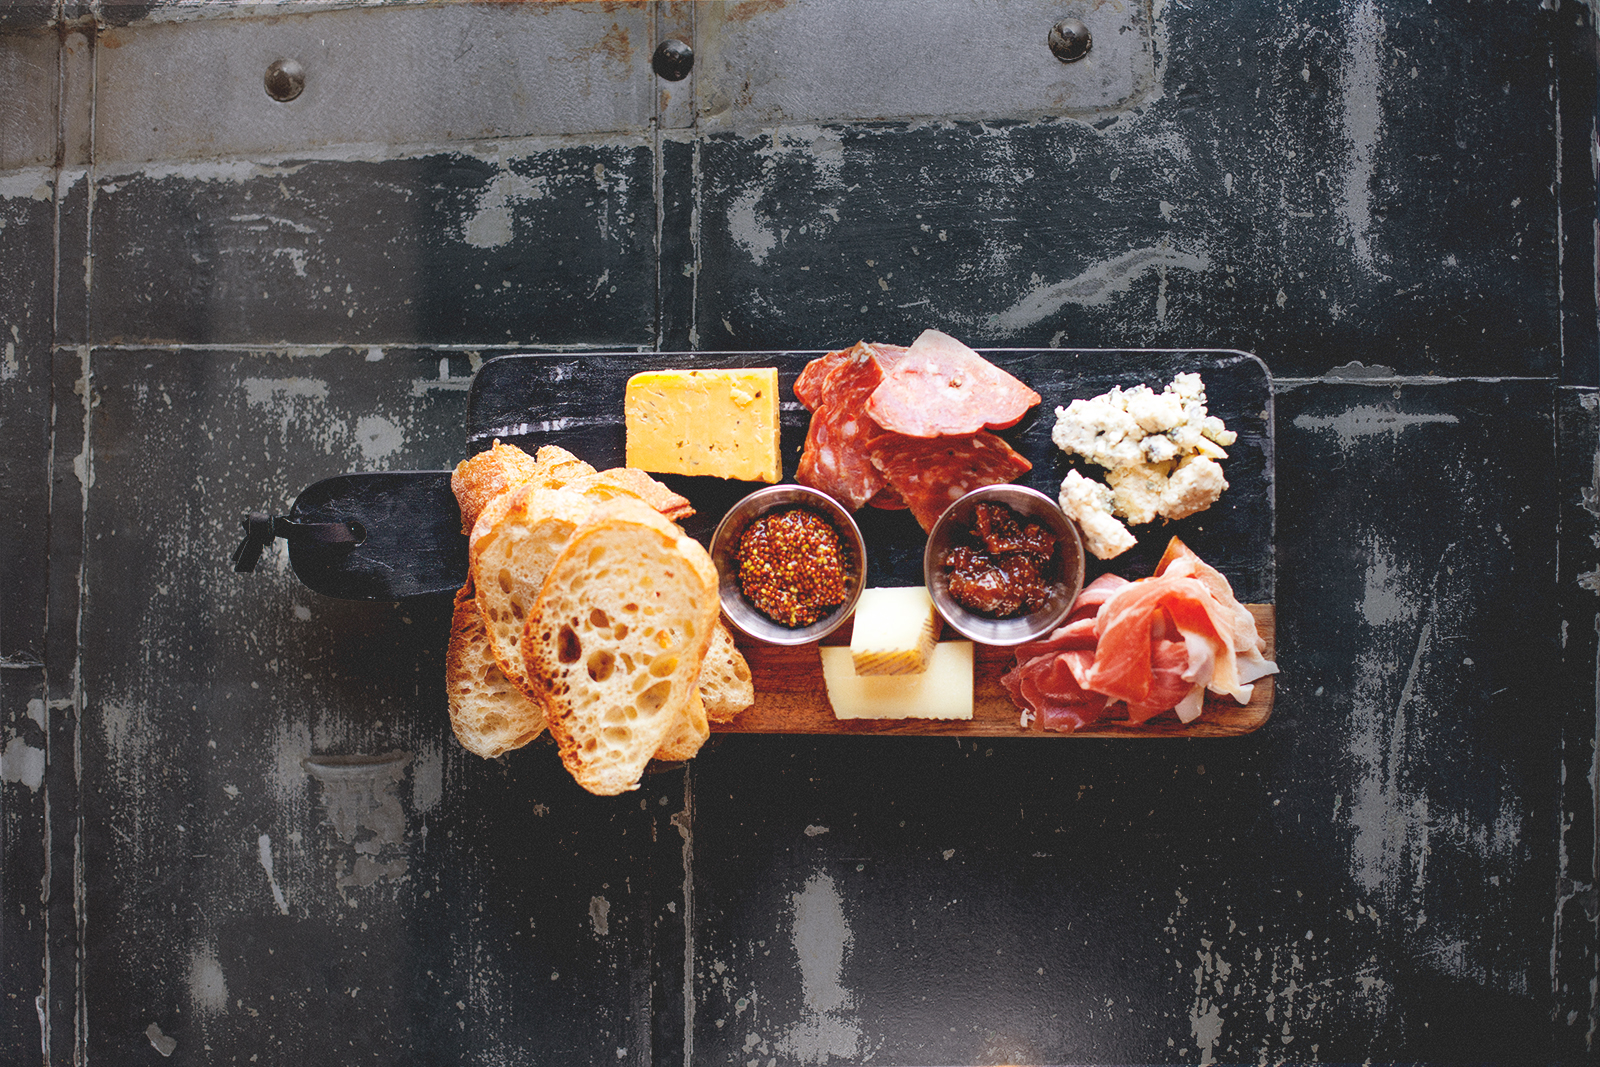 06_Revel Photography_Food_Meat Plate.jpg